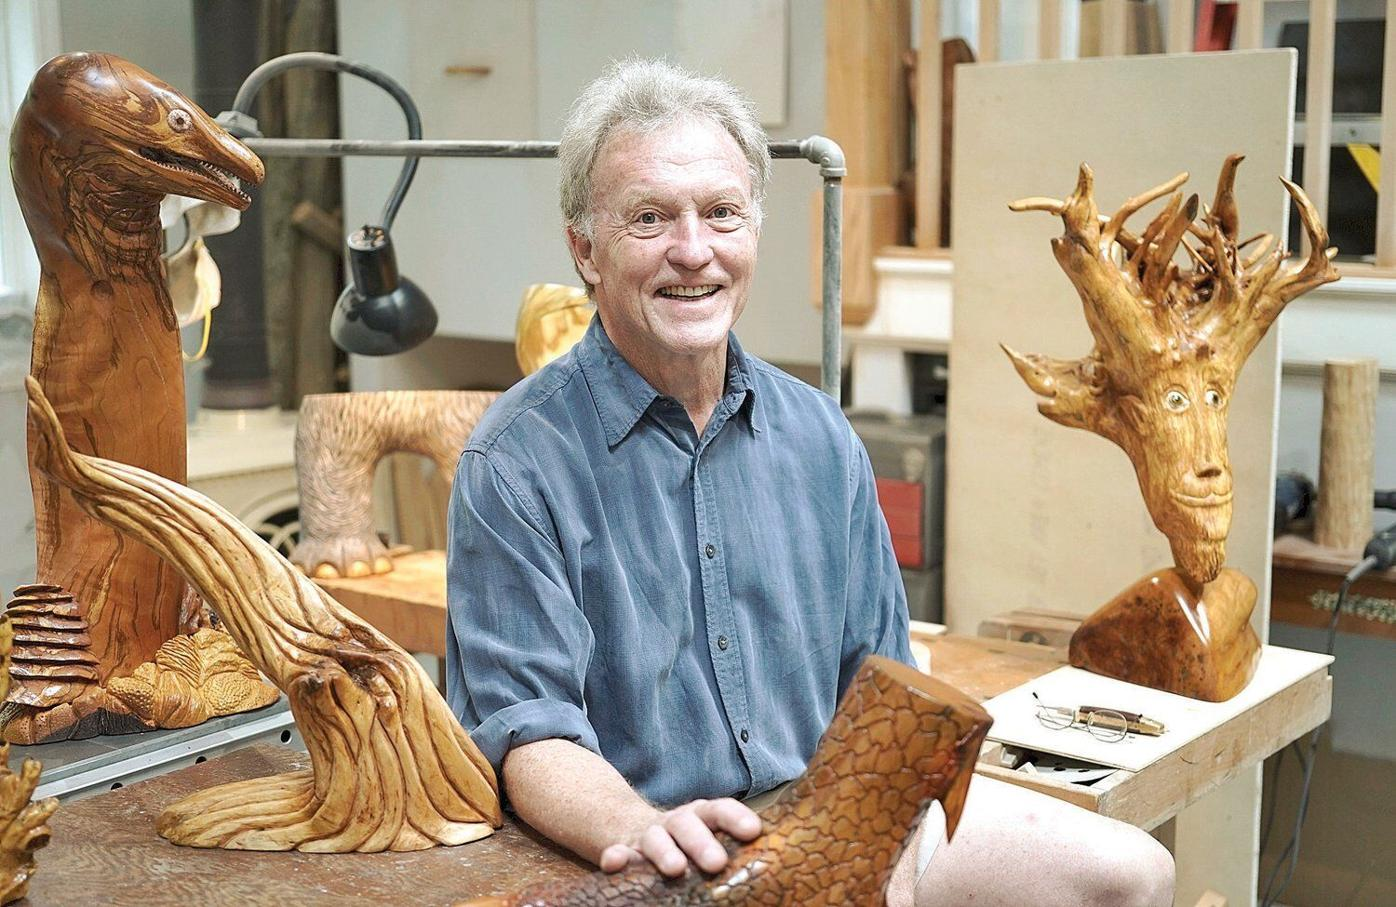 Berkshire Made: From wooden stump to detailed claw